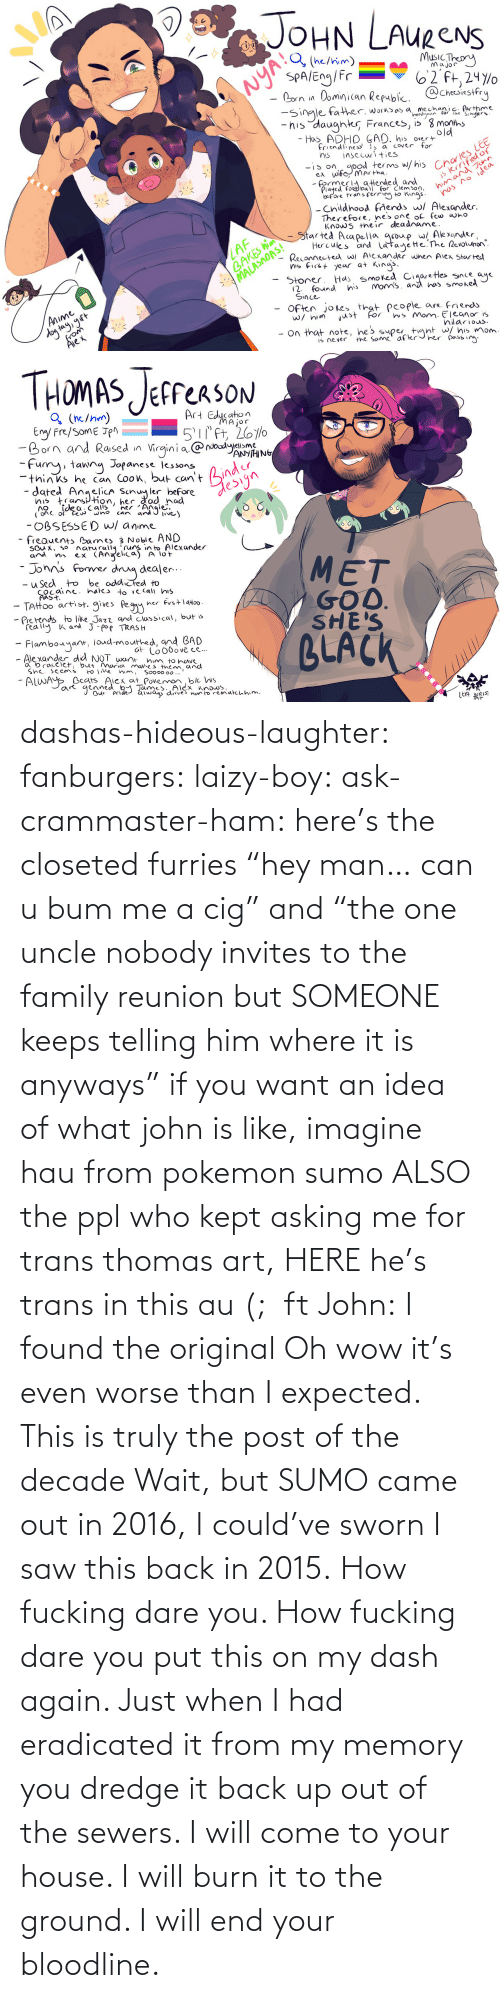 "hey: dashas-hideous-laughter:  fanburgers:   laizy-boy:   ask-crammaster-ham:   here's the closeted furries ""hey man… can u bum me a cig"" and ""the one uncle nobody invites to the family reunion but SOMEONE keeps telling him where it is anyways""   if you want an idea of what john is like, imagine hau from pokemon sumo ALSO the ppl who kept asking me for trans thomas art, HERE he's trans in this au (;  ft John:    I found the original     Oh wow it's even worse than I expected. This is truly the post of the decade    Wait, but SUMO came out in 2016, I could've sworn I saw this back in 2015.    How fucking dare you. How fucking dare you put this on my dash again. Just when I had eradicated it from my memory you dredge it back up out of the sewers. I will come to your house. I will burn it to the ground. I will end your bloodline."